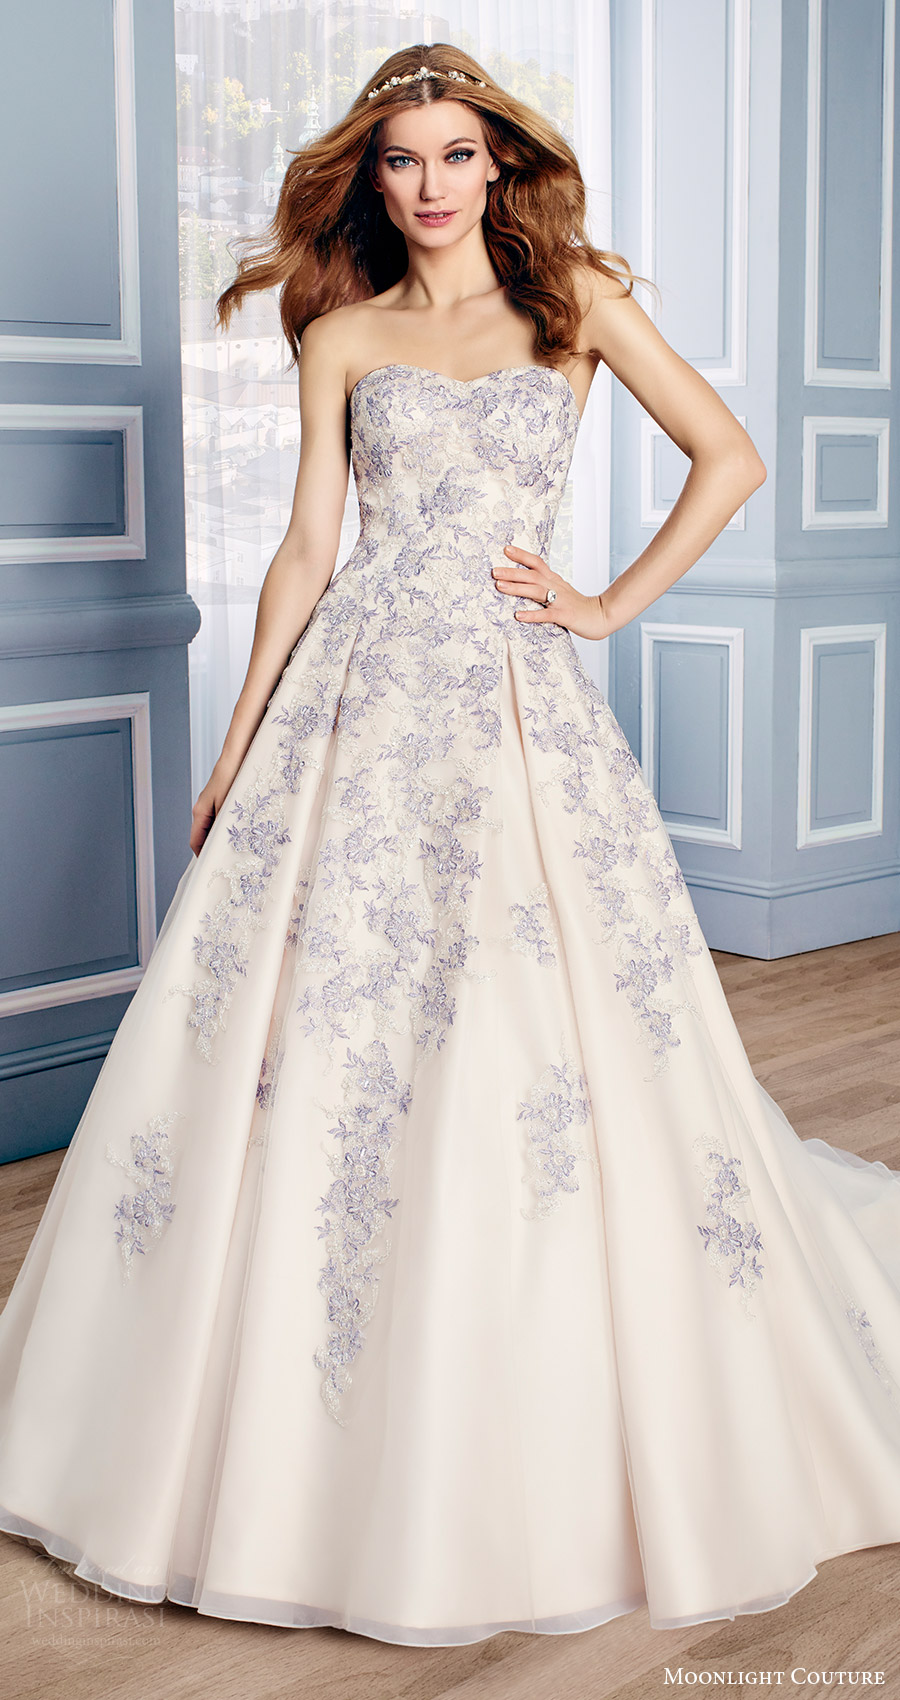 moonlight couture bridal fall 2016 strapless sweetheart lace aline wedding dress (h1311) mv multicolor